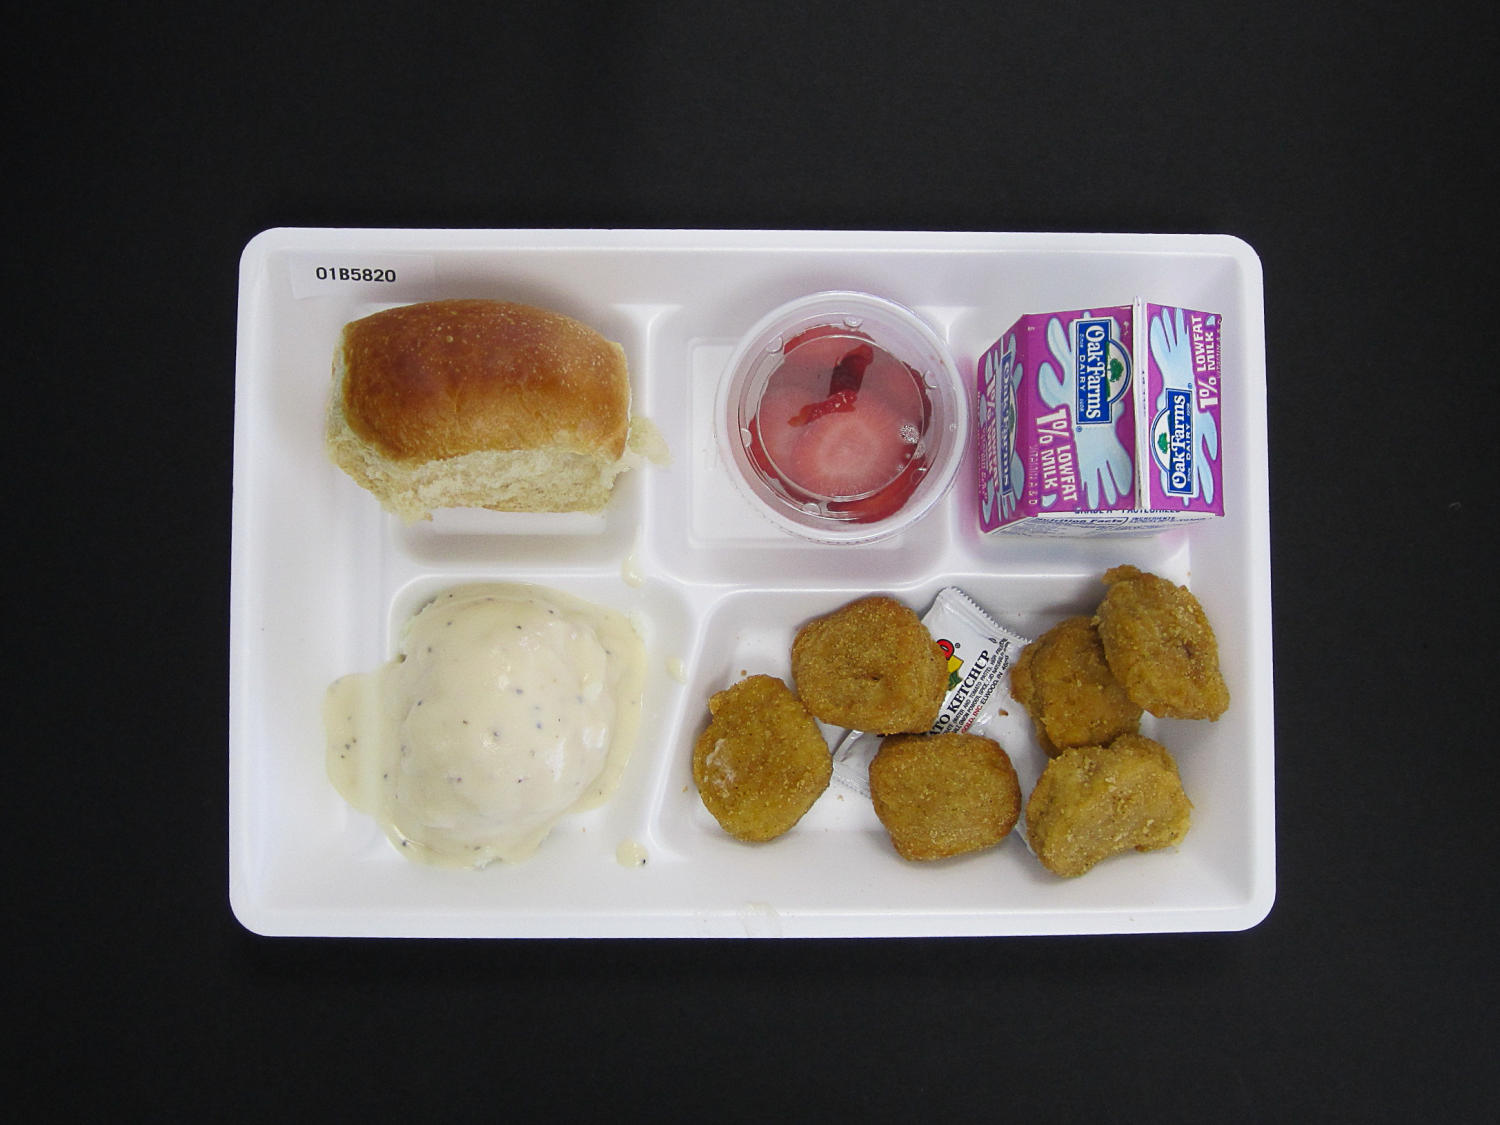 Student Lunch Tray: 01_20110415_01B5820                                                                                                      [Sequence #]: 1 of 2